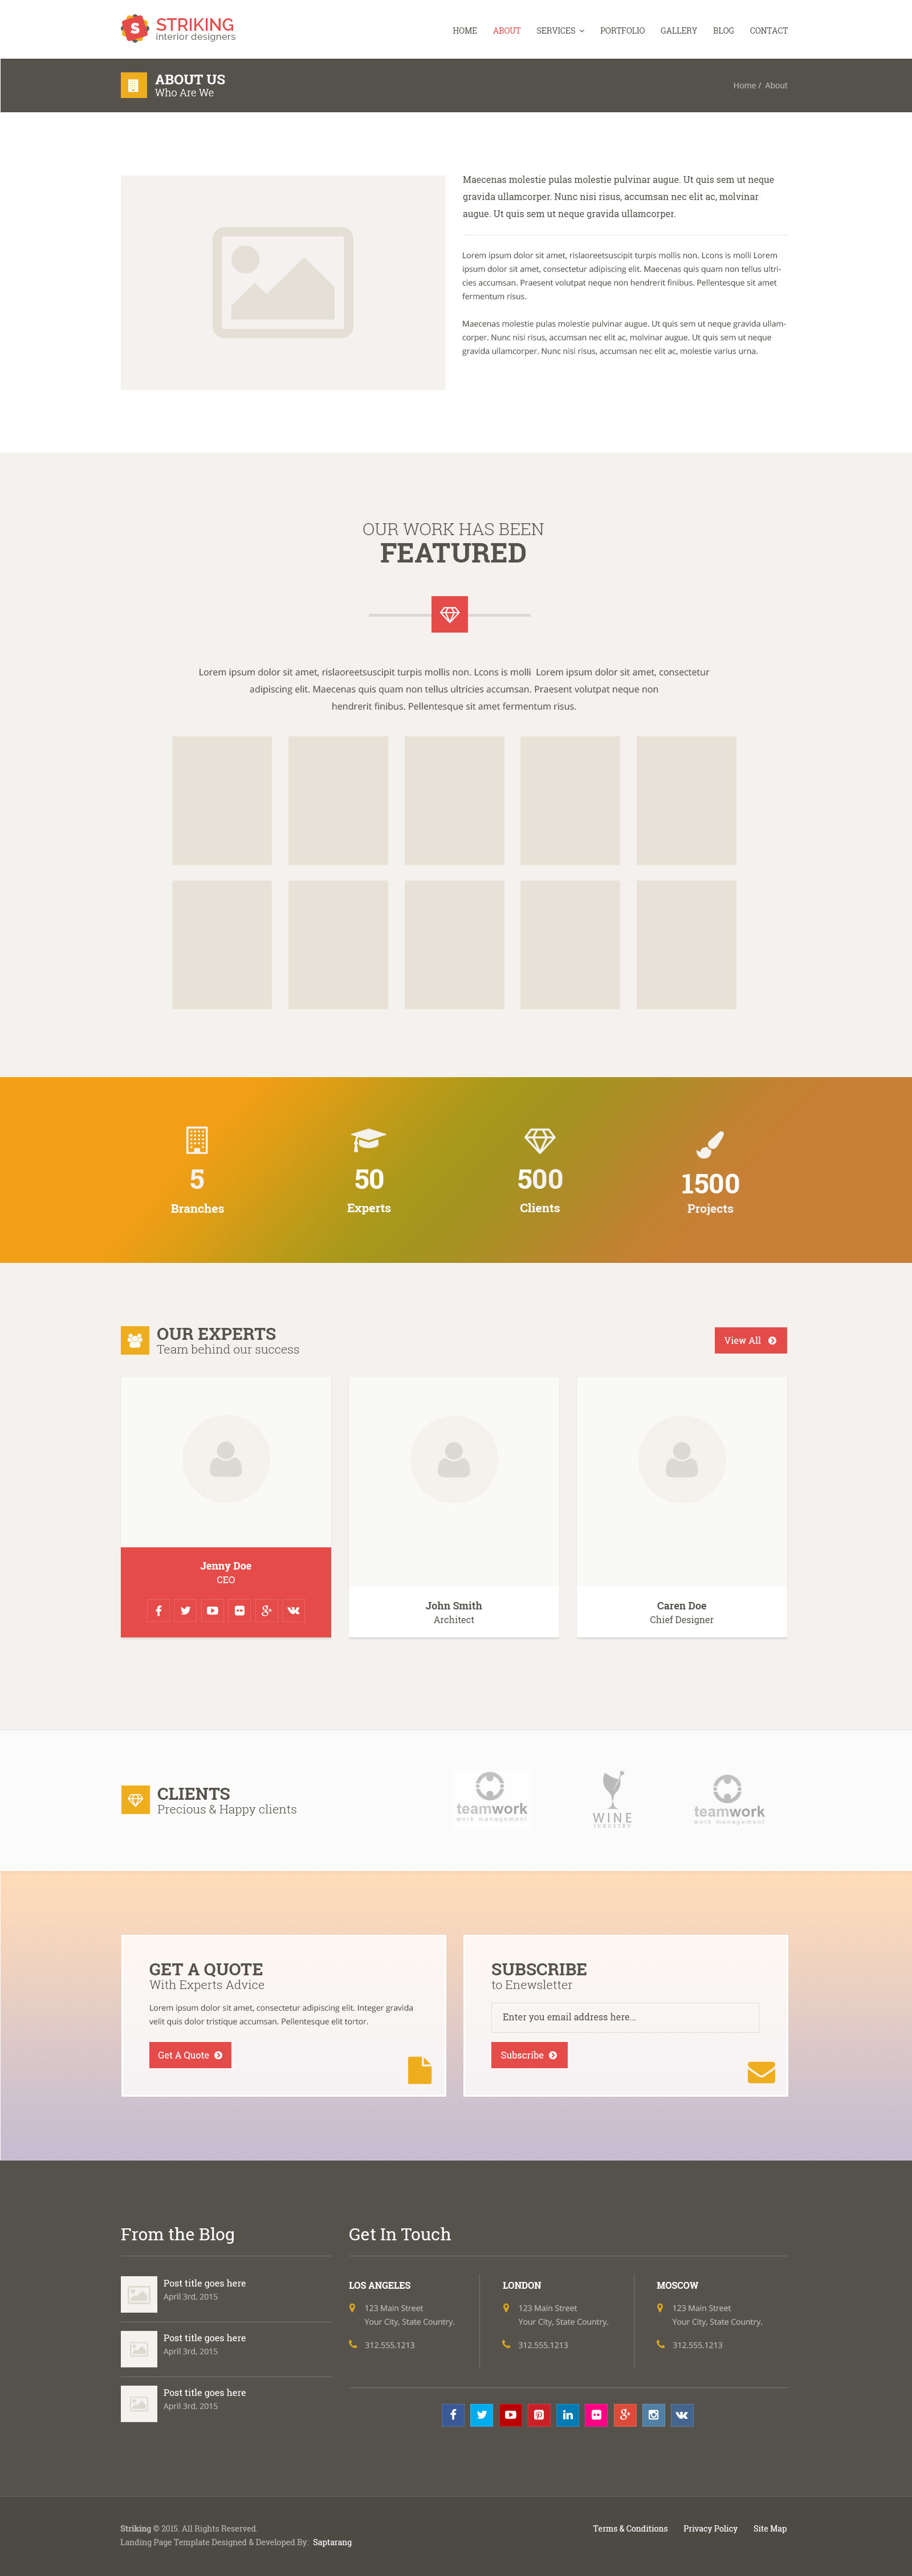 Phpmailer html template 2018 it uses a configurable template file to define the html message body template based email sending send html messages using templates phpmailer maxwellsz